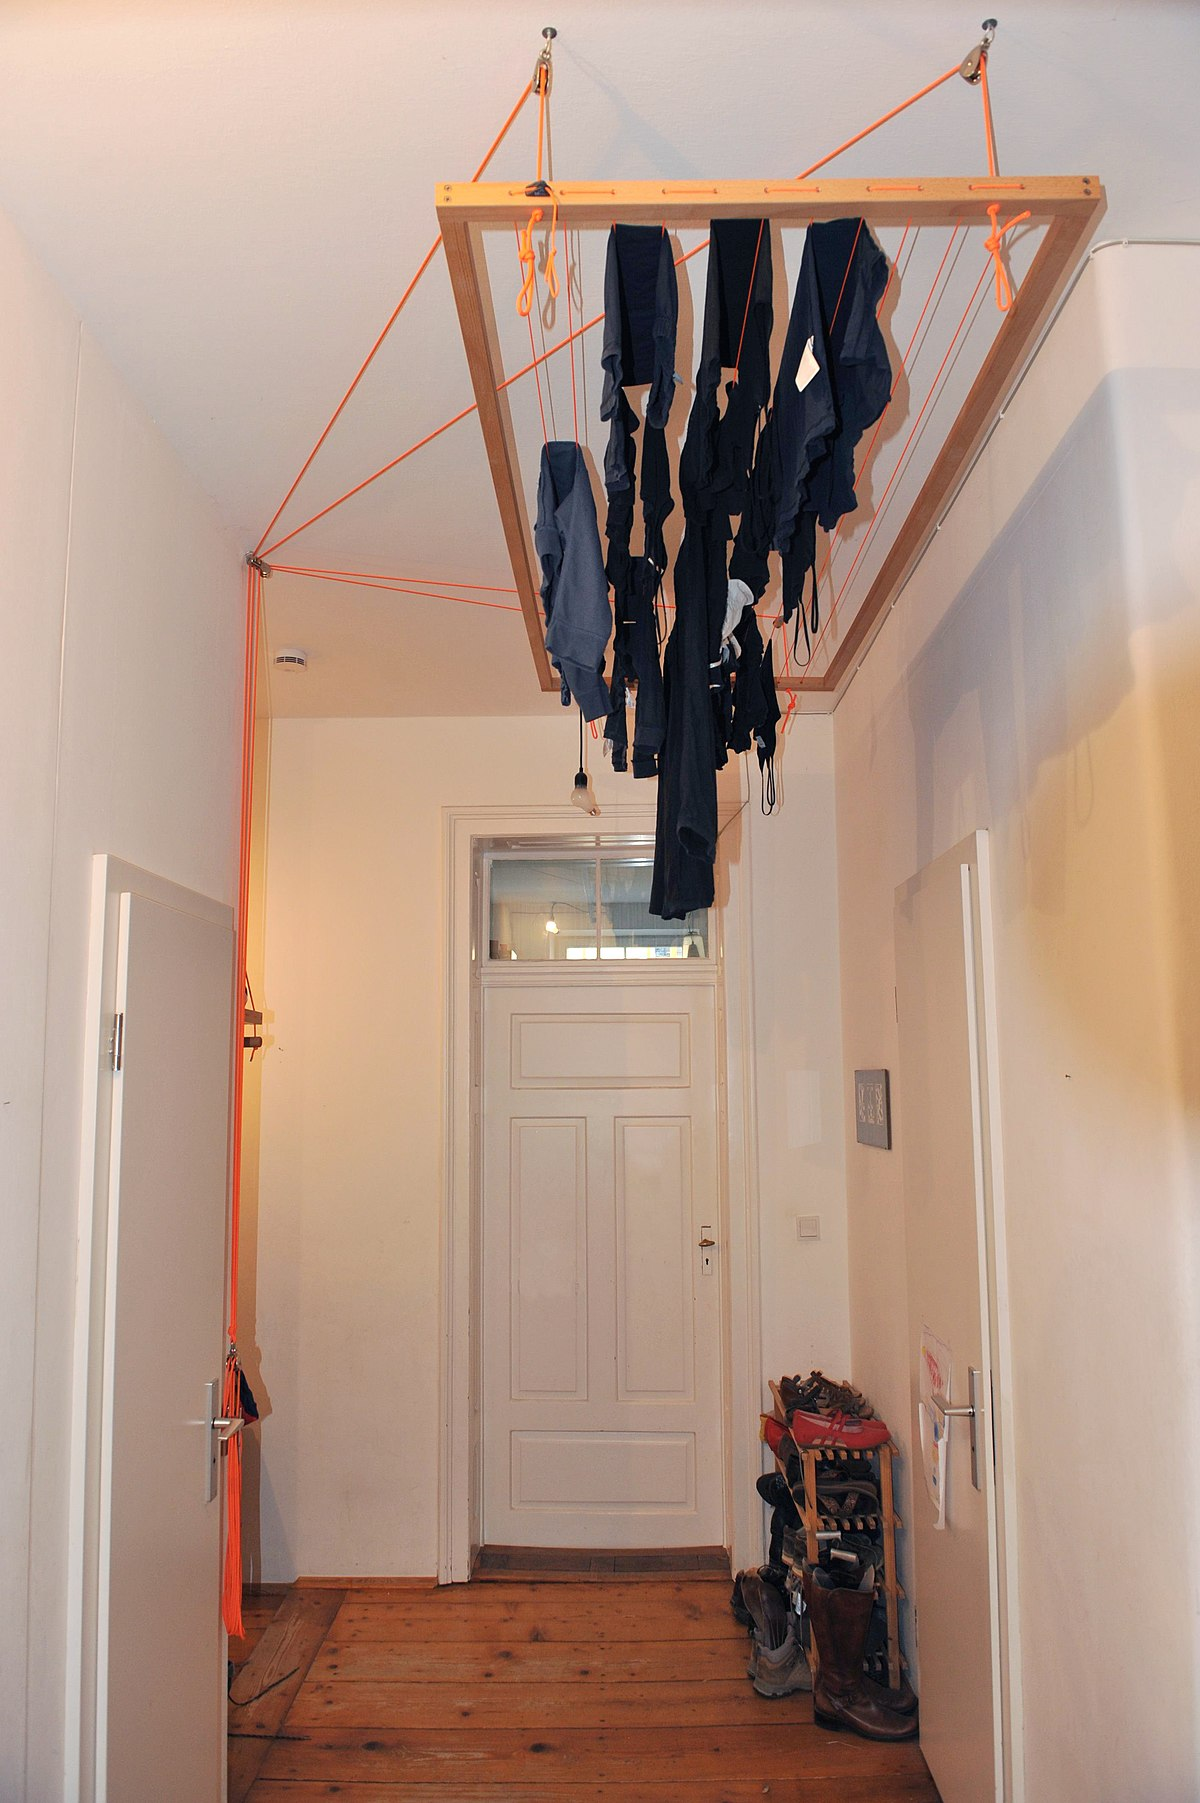 Overhead Clothes Airer Wikipedia